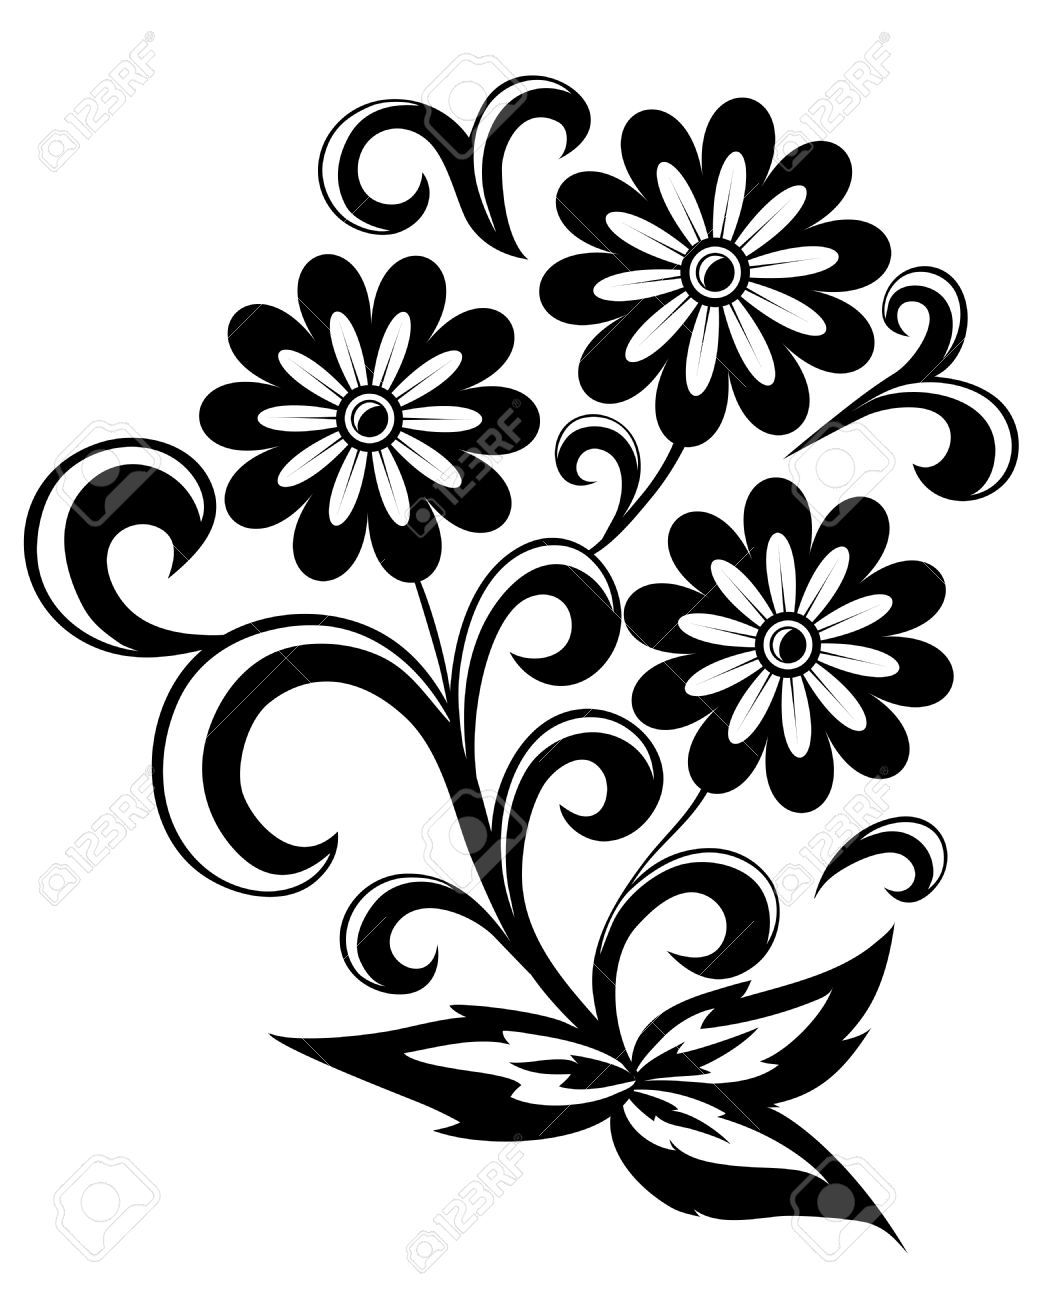 Abstract flower clipart free graphic royalty free Stock Vector | Вышивка 1 | Abstract flowers, Black, white abstract ... graphic royalty free